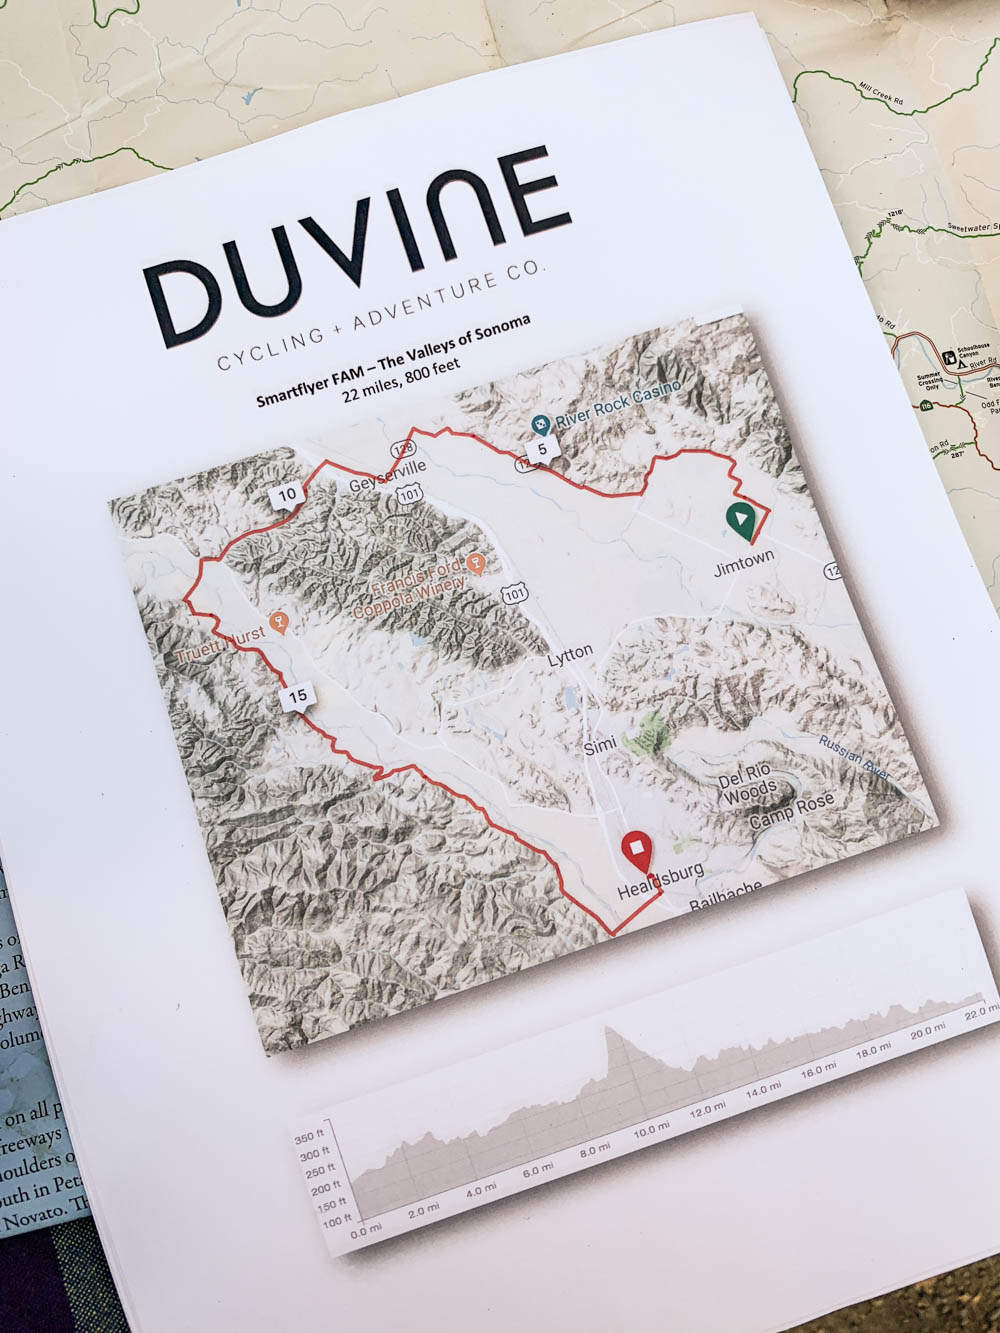 Bike Tours Napa_Duvine_Napa_Travel_Ideas_LR.jpg